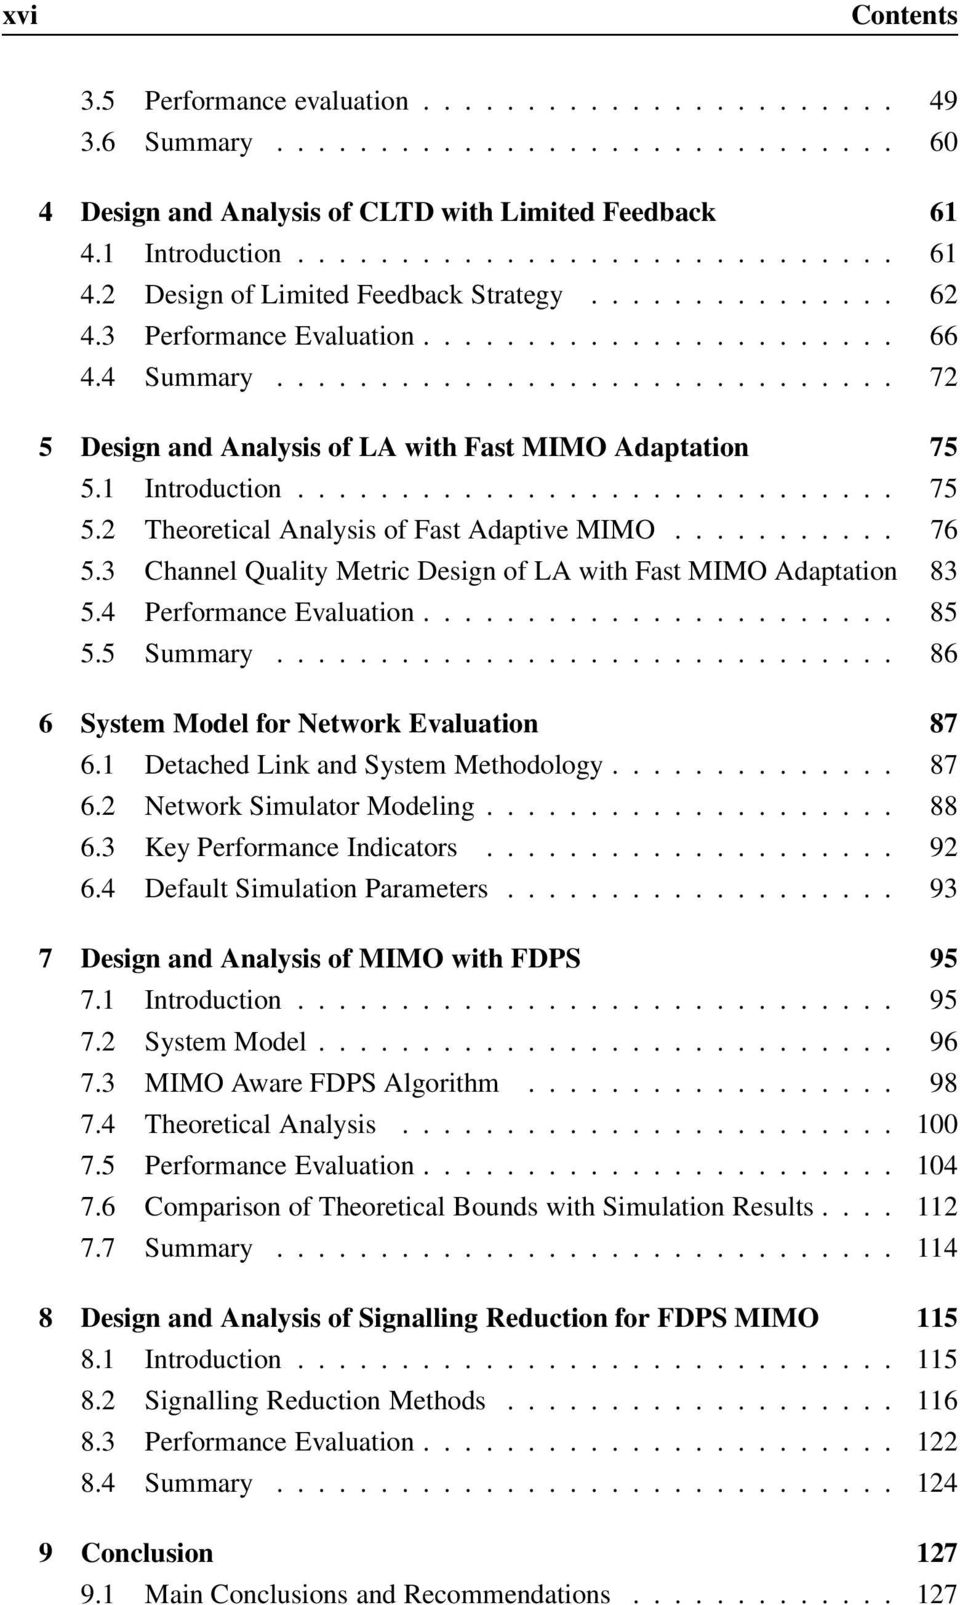 ............................. 72 5 Design and Analysis of LA with Fast MIMO Adaptation 75 5.1 Introduction............................. 75 5.2 Theoretical Analysis of Fast Adaptive MIMO........... 76 5.